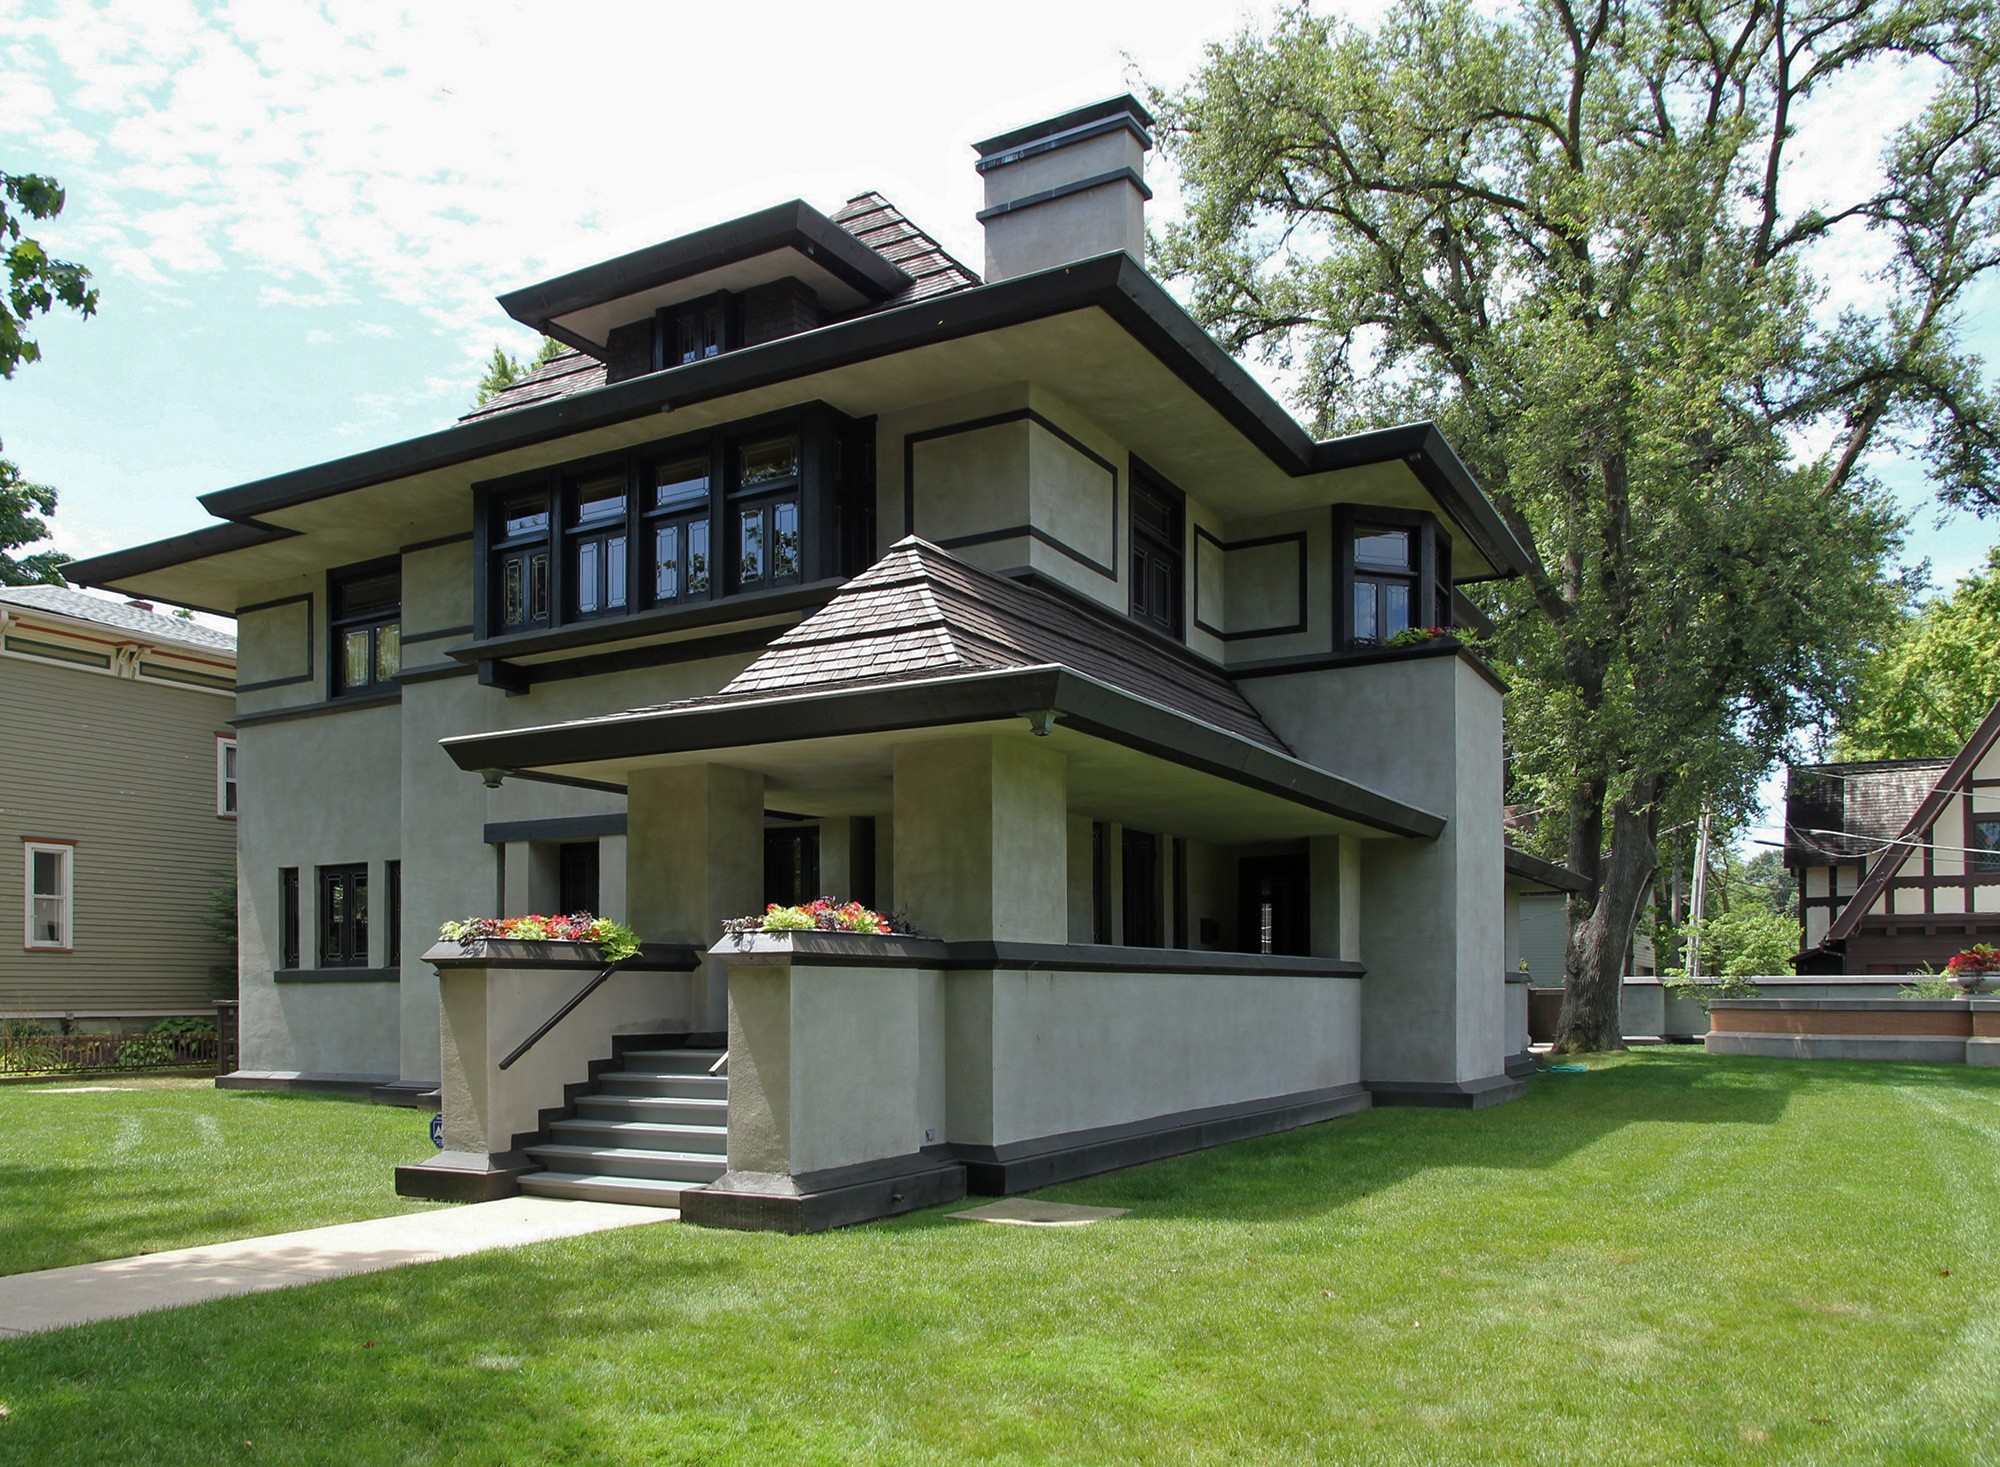 Lloyd Frank Wright Houses frank lloyd wright in oak park · tours · chicago